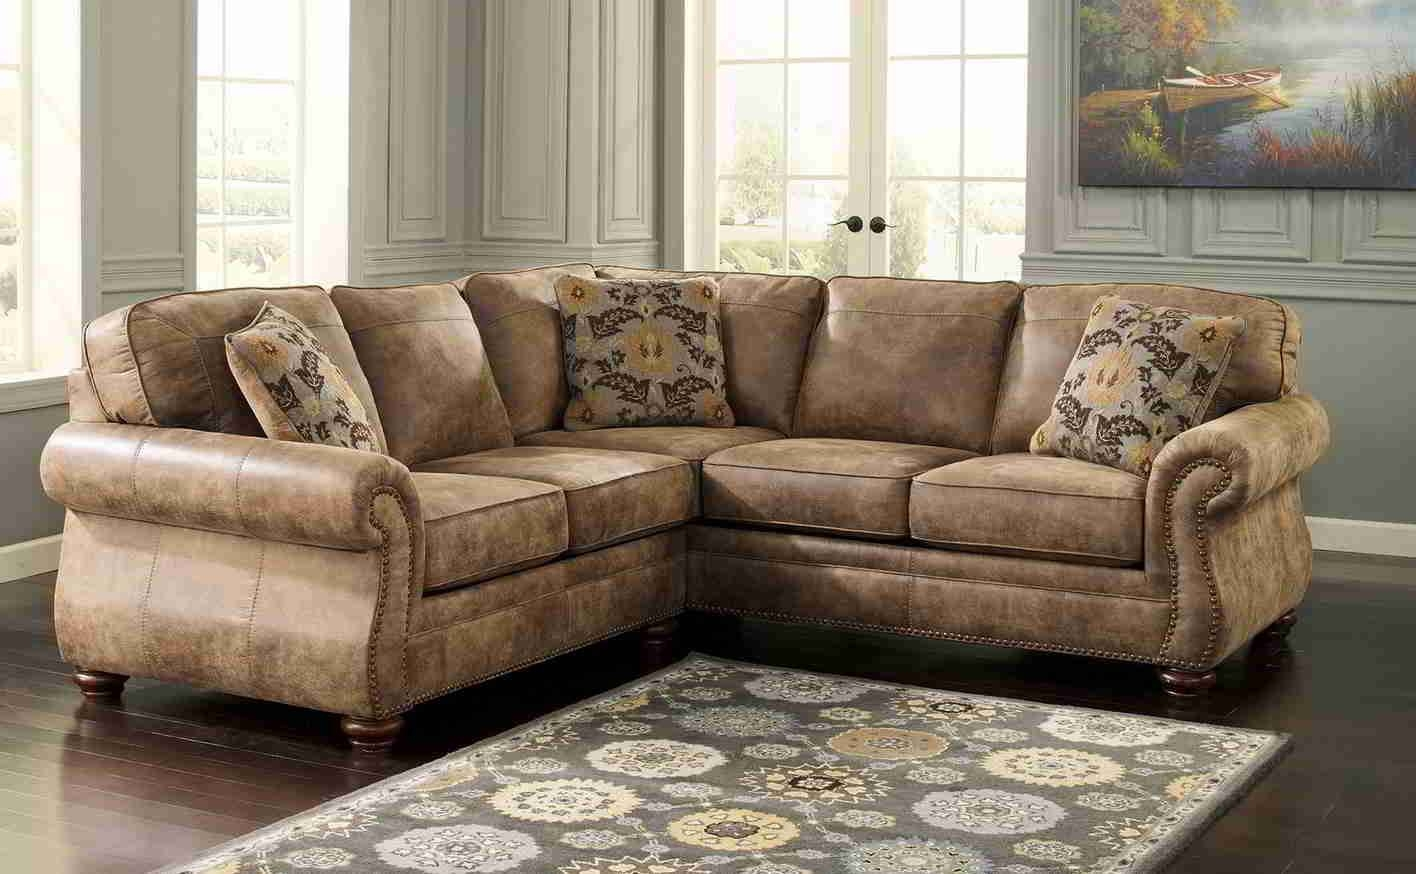 Cheap Sectional Sofas With Recliners. Cheap Reclining S Sale with Charleston Sectional Sofas (Image 2 of 15)